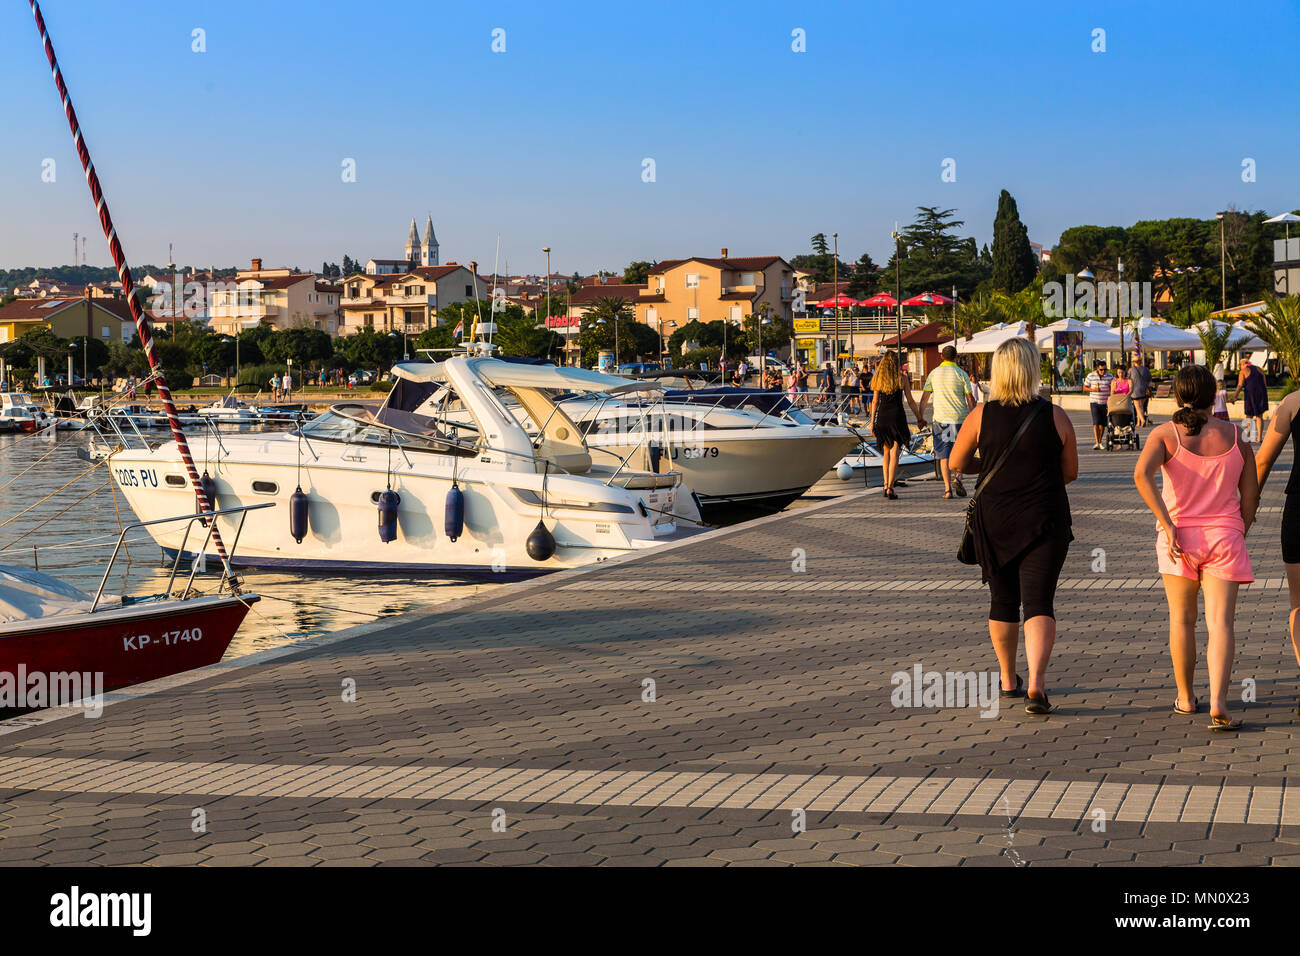 MEDULIN, CROATIA - JUNE 24, 2017. People enjoy the beautiful Medulin downtown waterfront with boat marinas - Stock Image